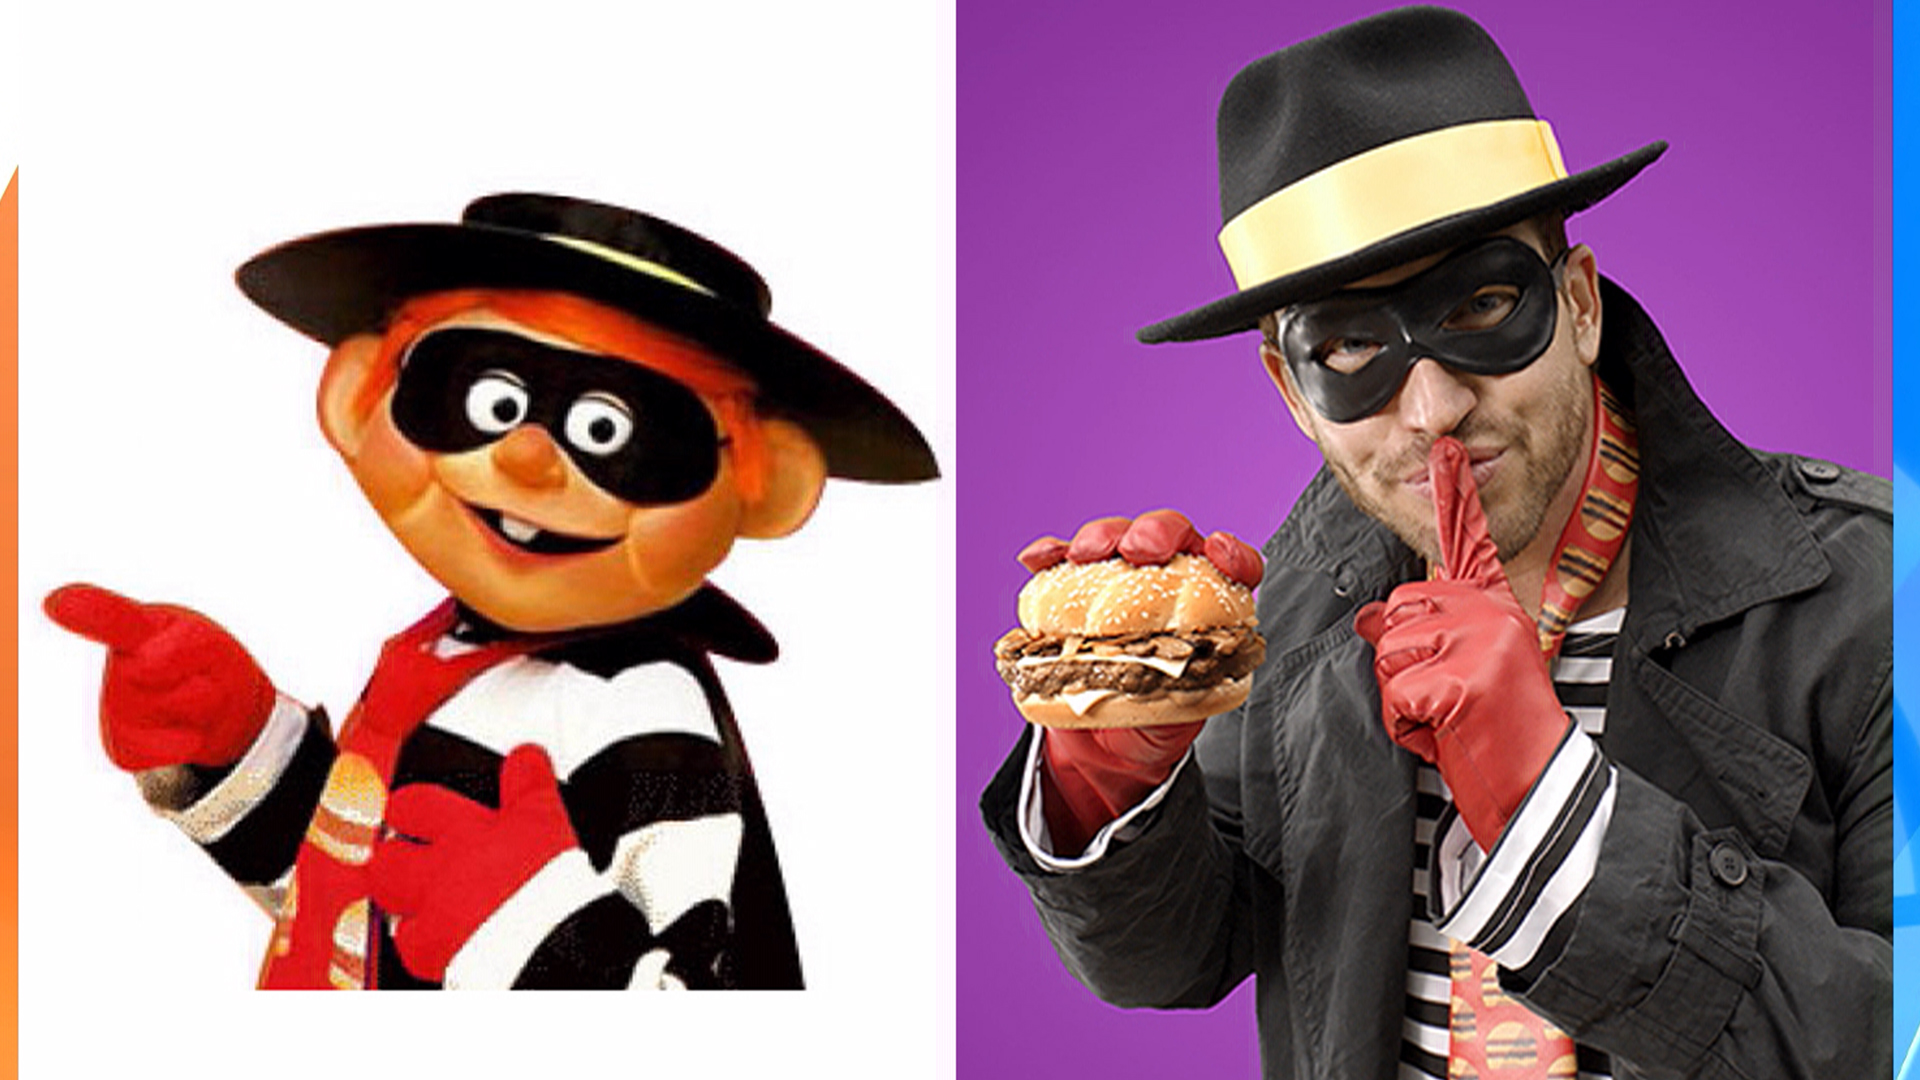 mcdonalds brings back live action hamburglar to boost sales